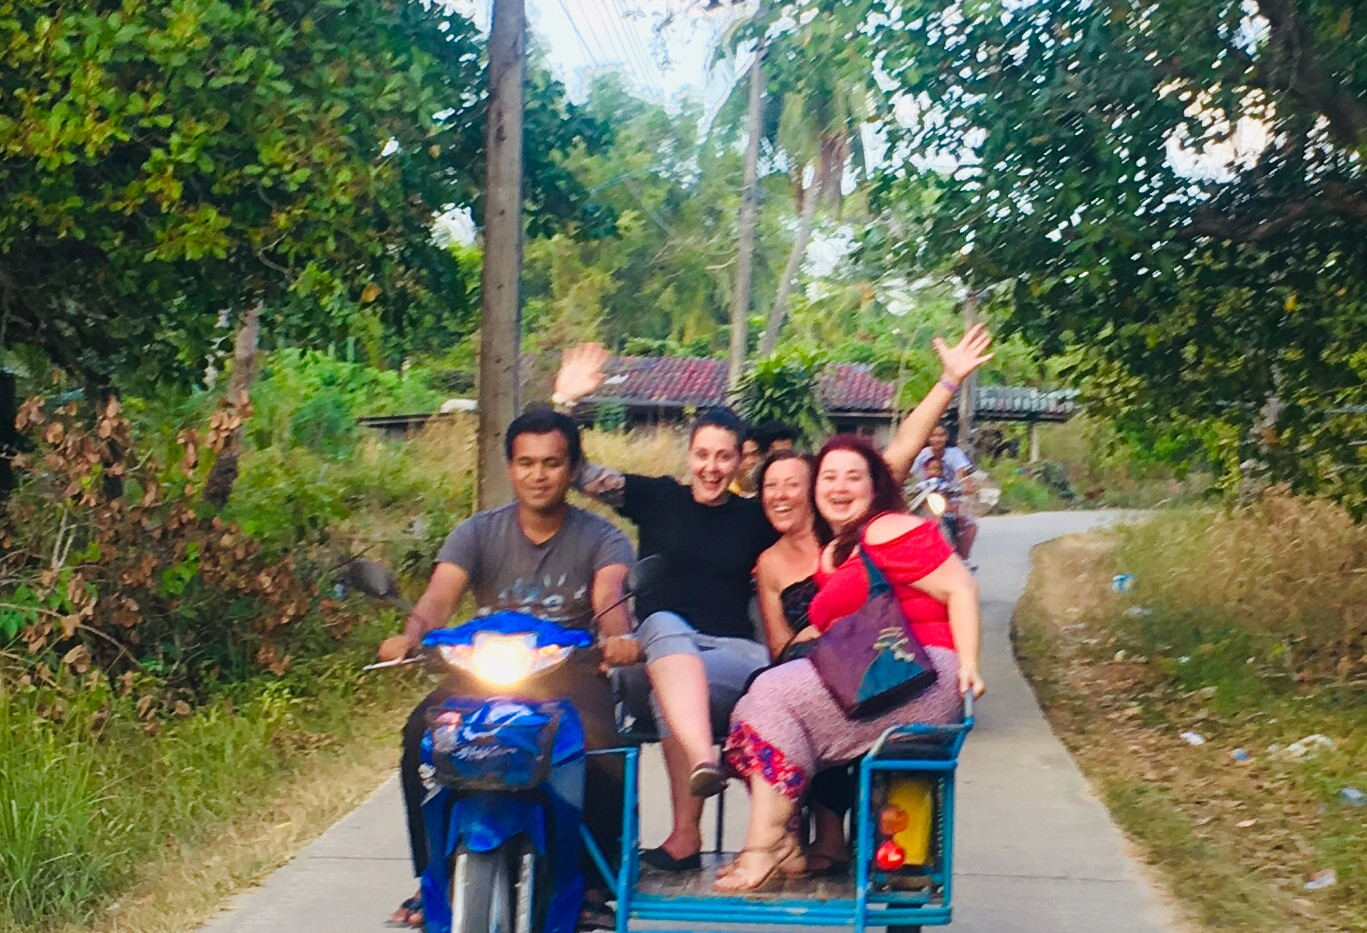 Vicky, Nicki & Hannah in motorbike taxi, Koh Mook, Thailand